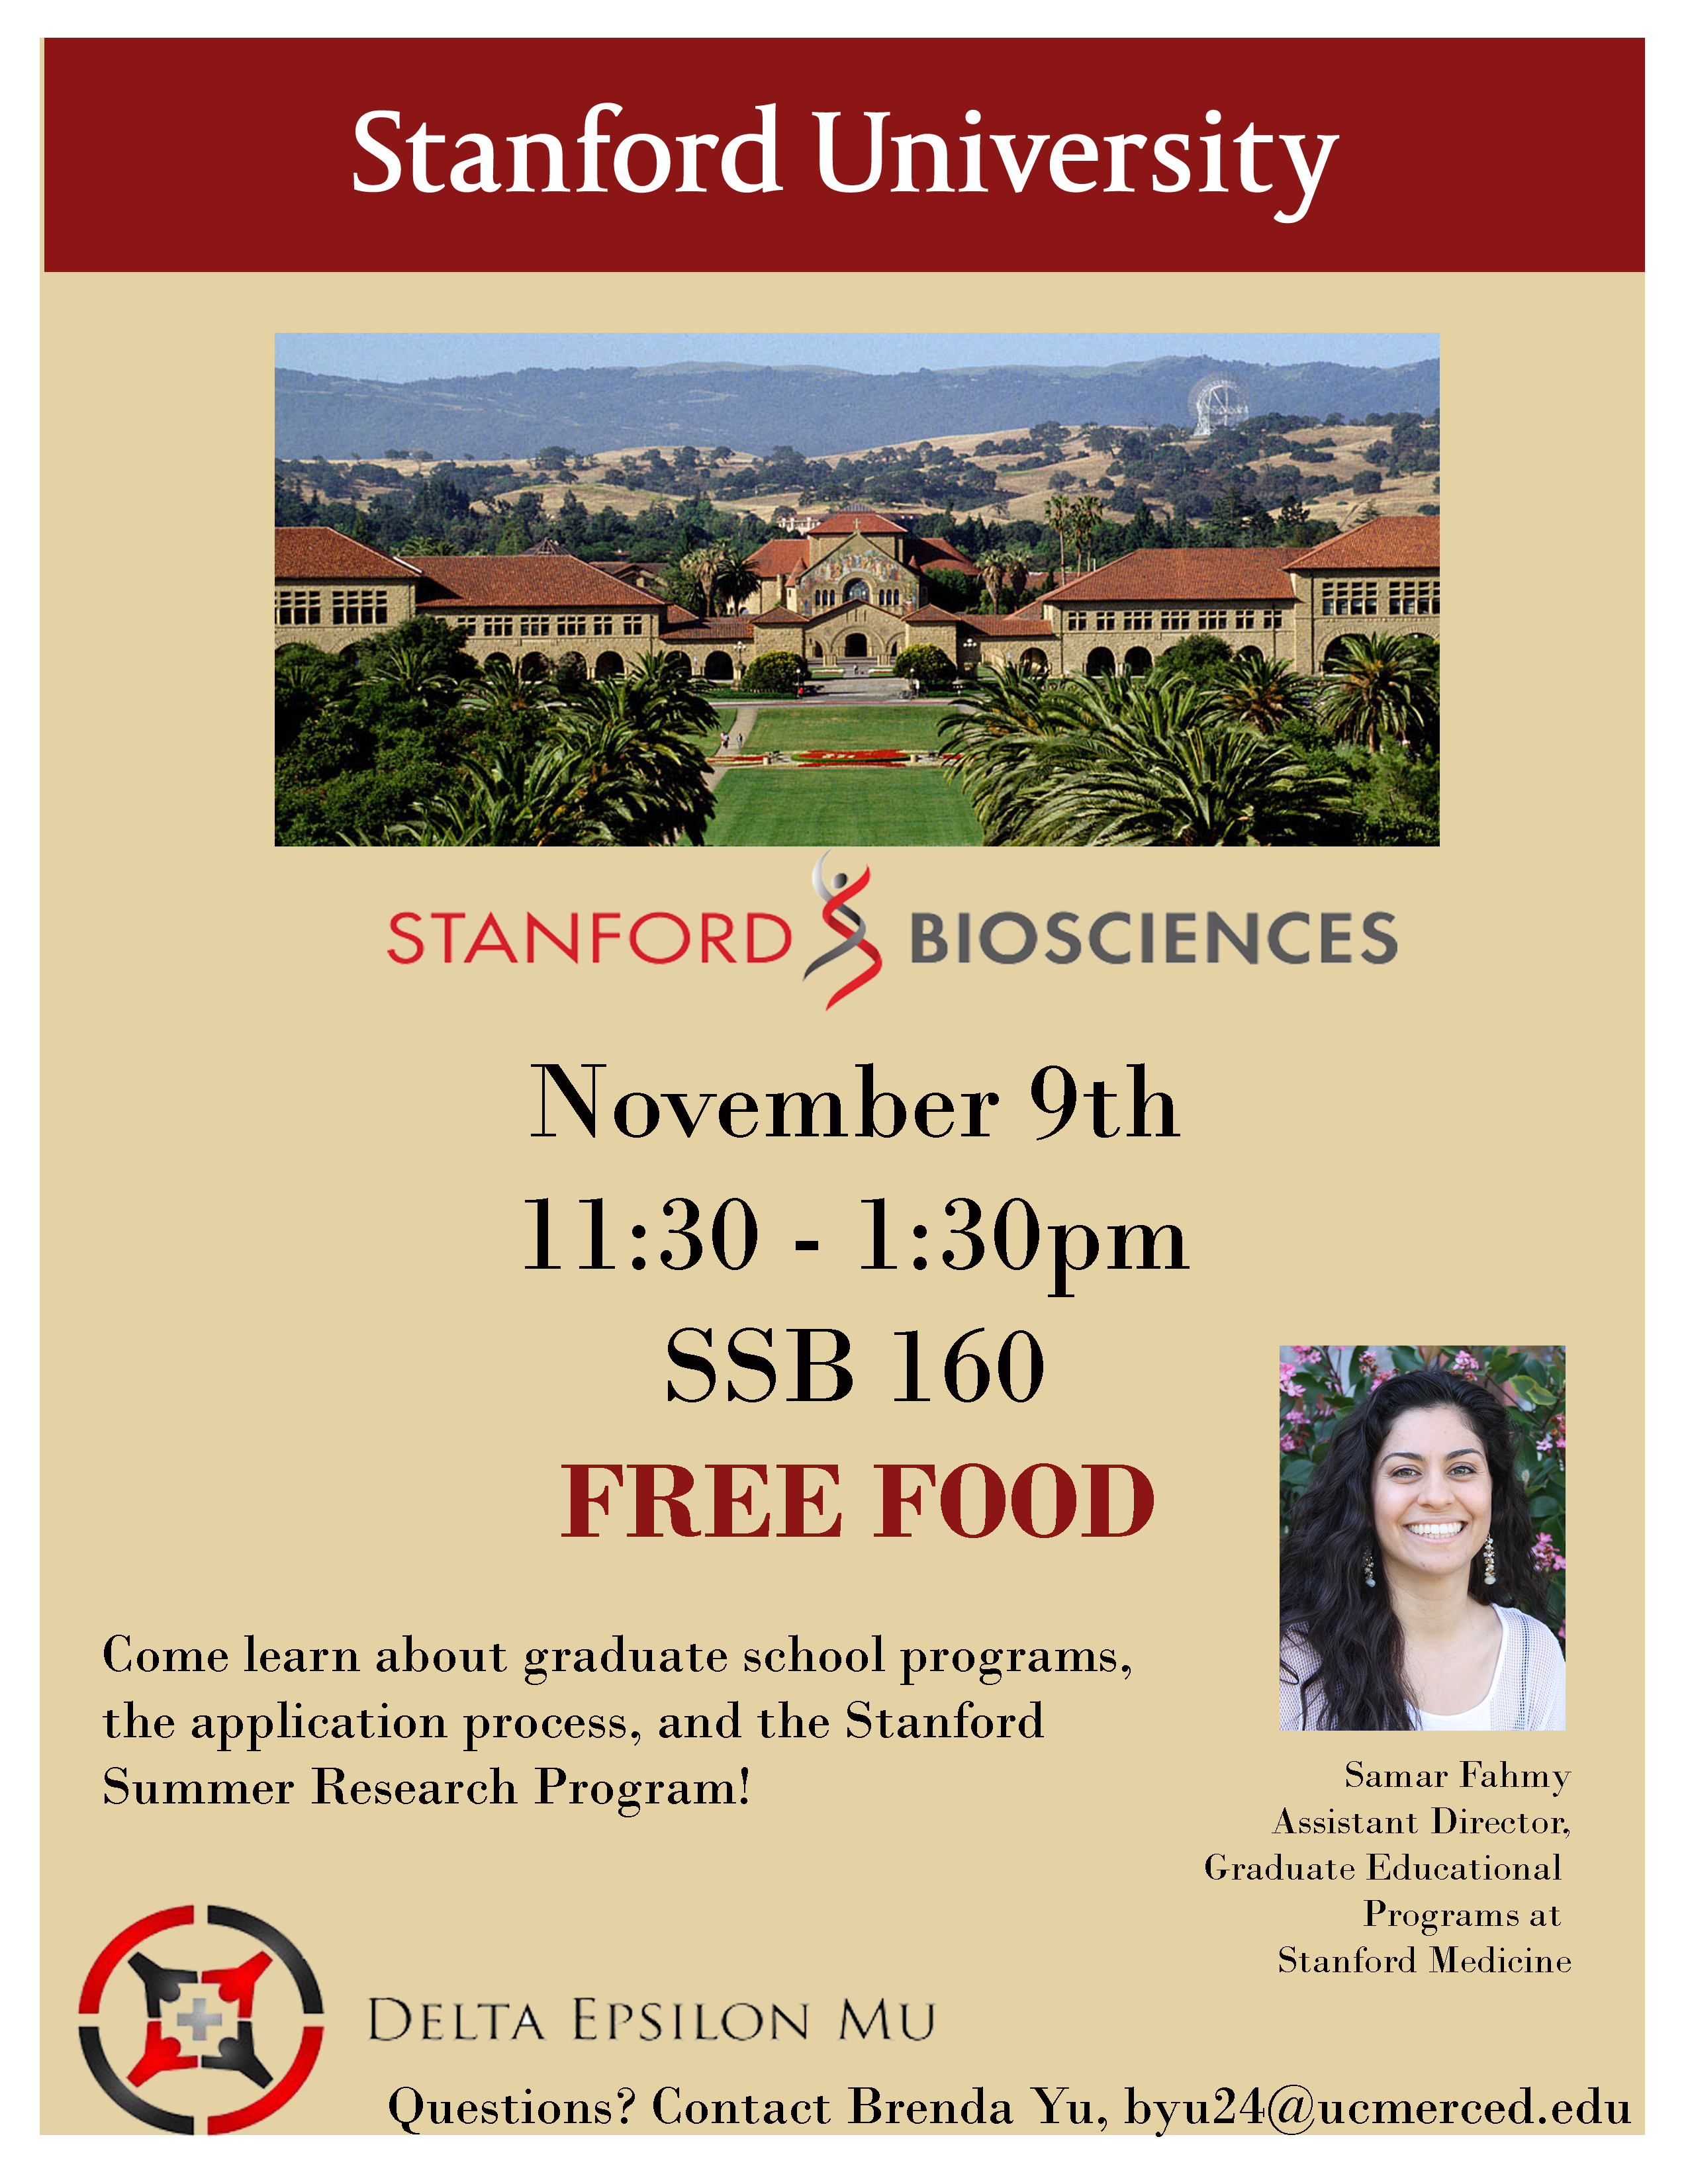 UC Merced Welcomes Stanford Biosciences for Grad School Edge with